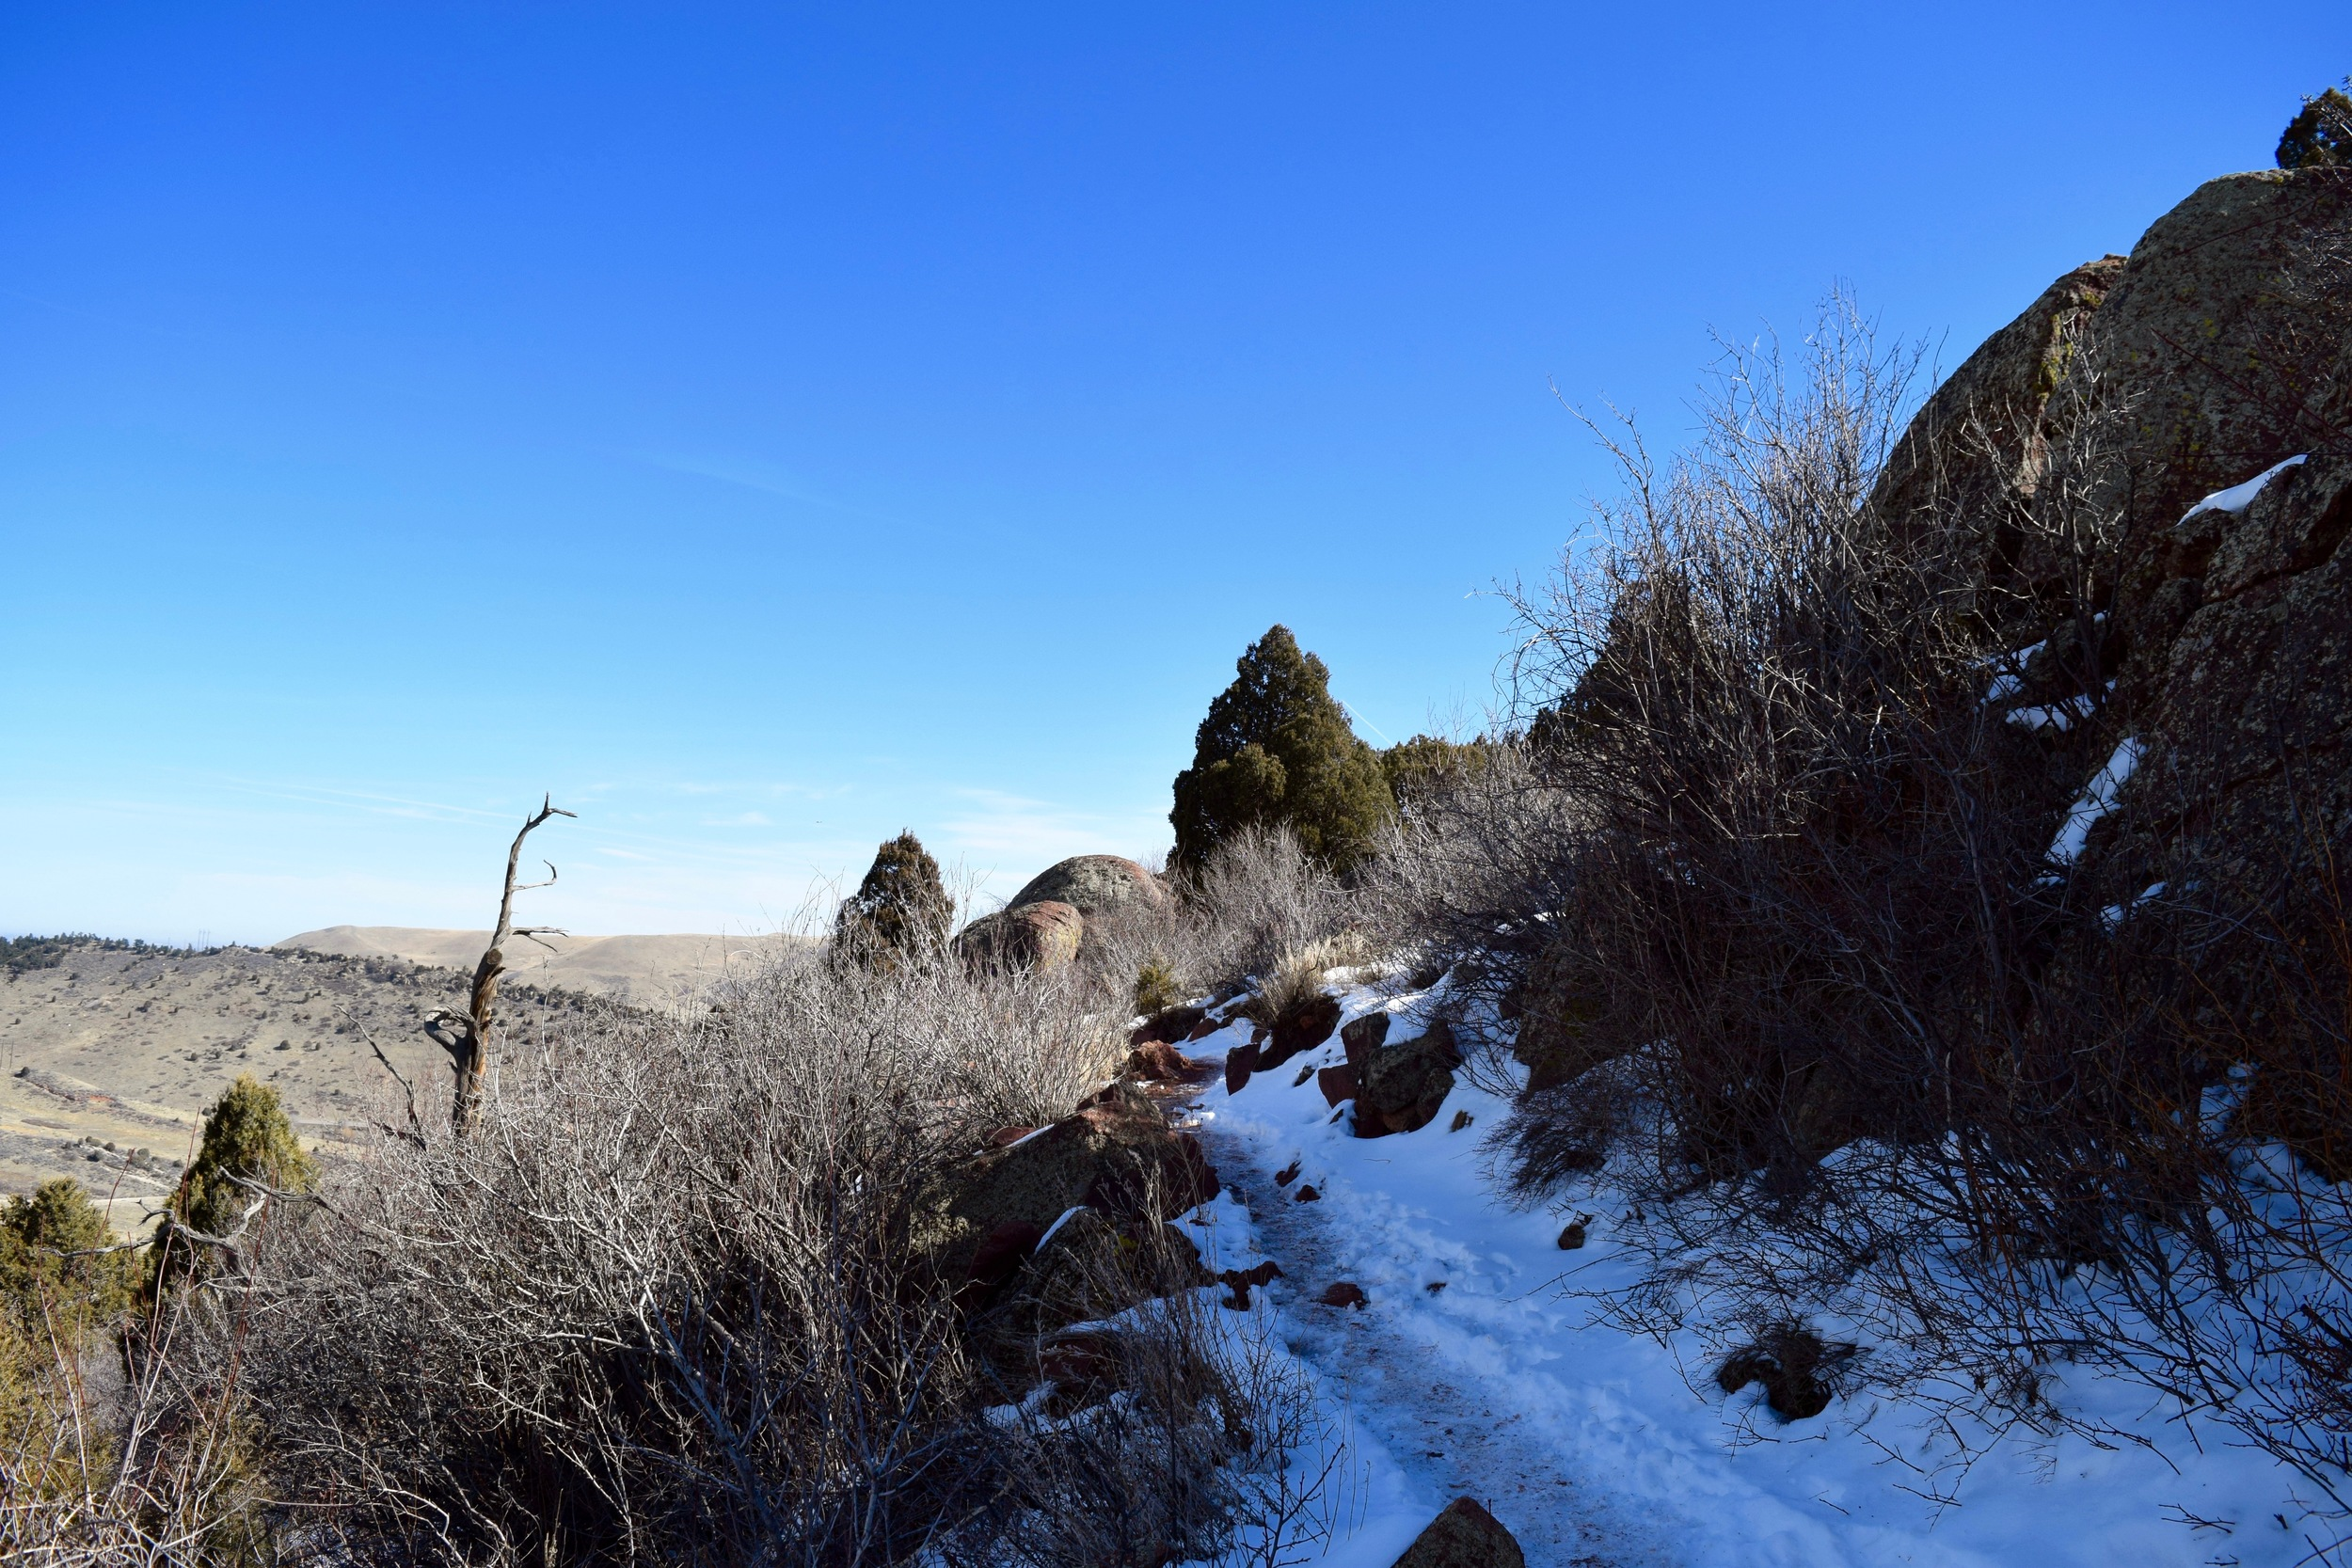 Half of this hike was like summer hiking. The other half was most definitely winter hiking.